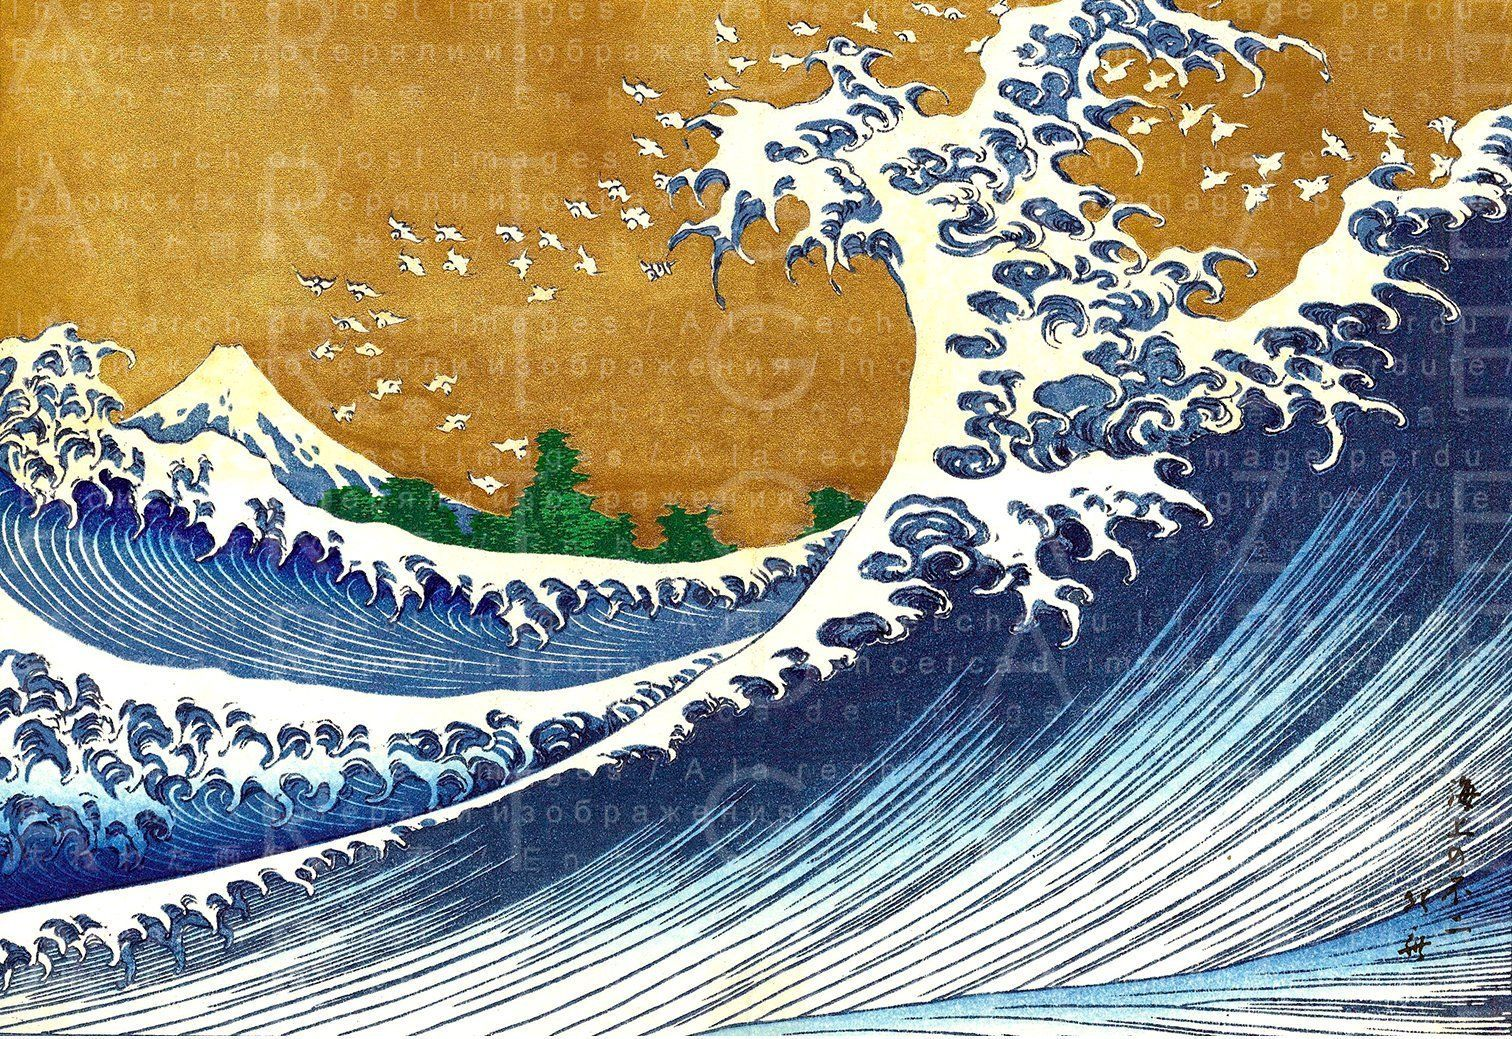 Another View Of Kanagawa Great Wave By Katsushika Hokusai Stunning Japanese Art Digital Download Vintage Woodcut Japanese Wave Painting Japanese Art Wave Art